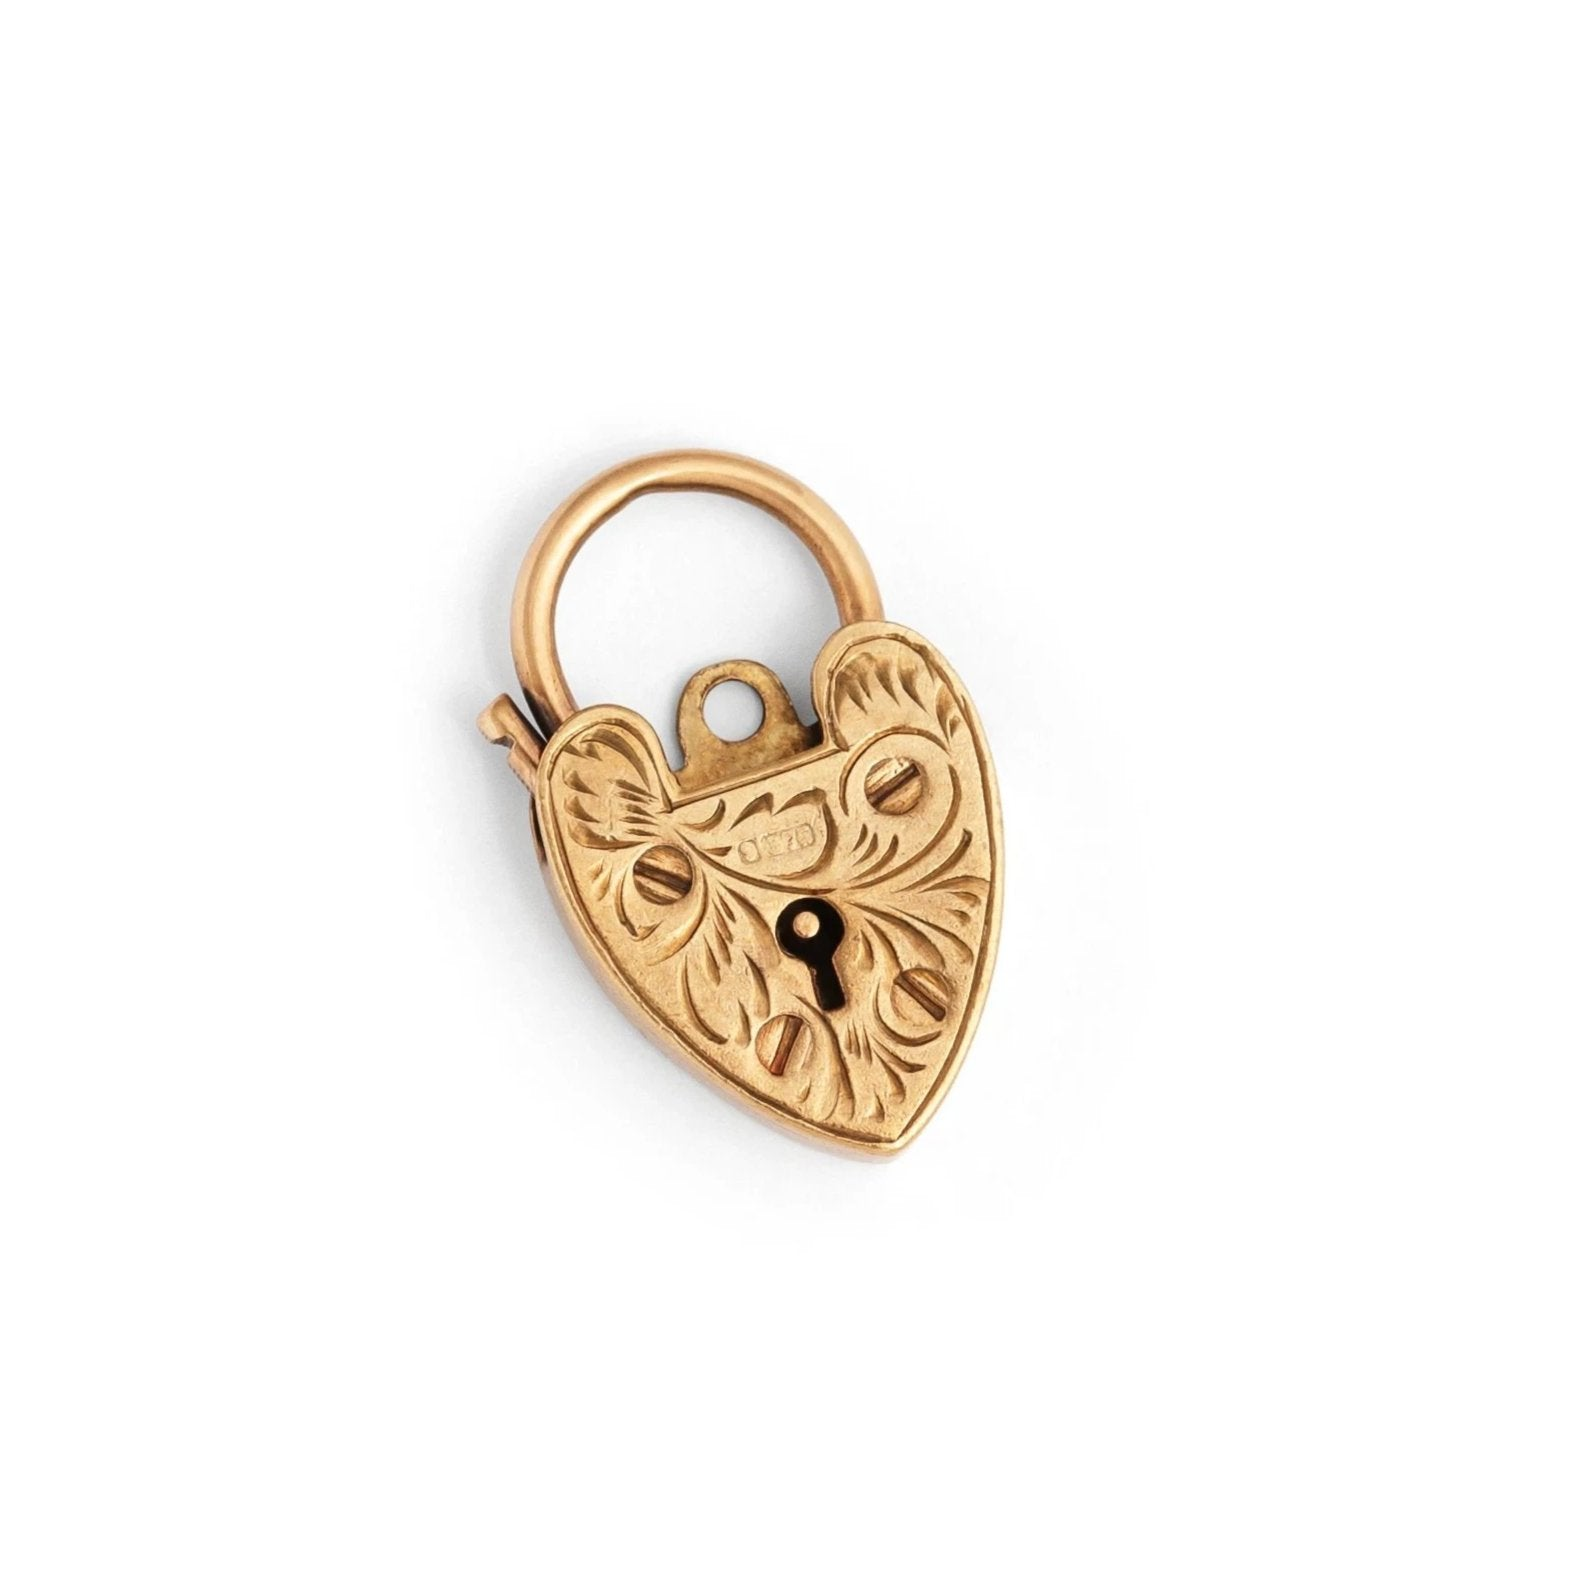 9ct Gold Heart Shaped Padlock Charm 11mm Jewellery Findings New 375 FP51